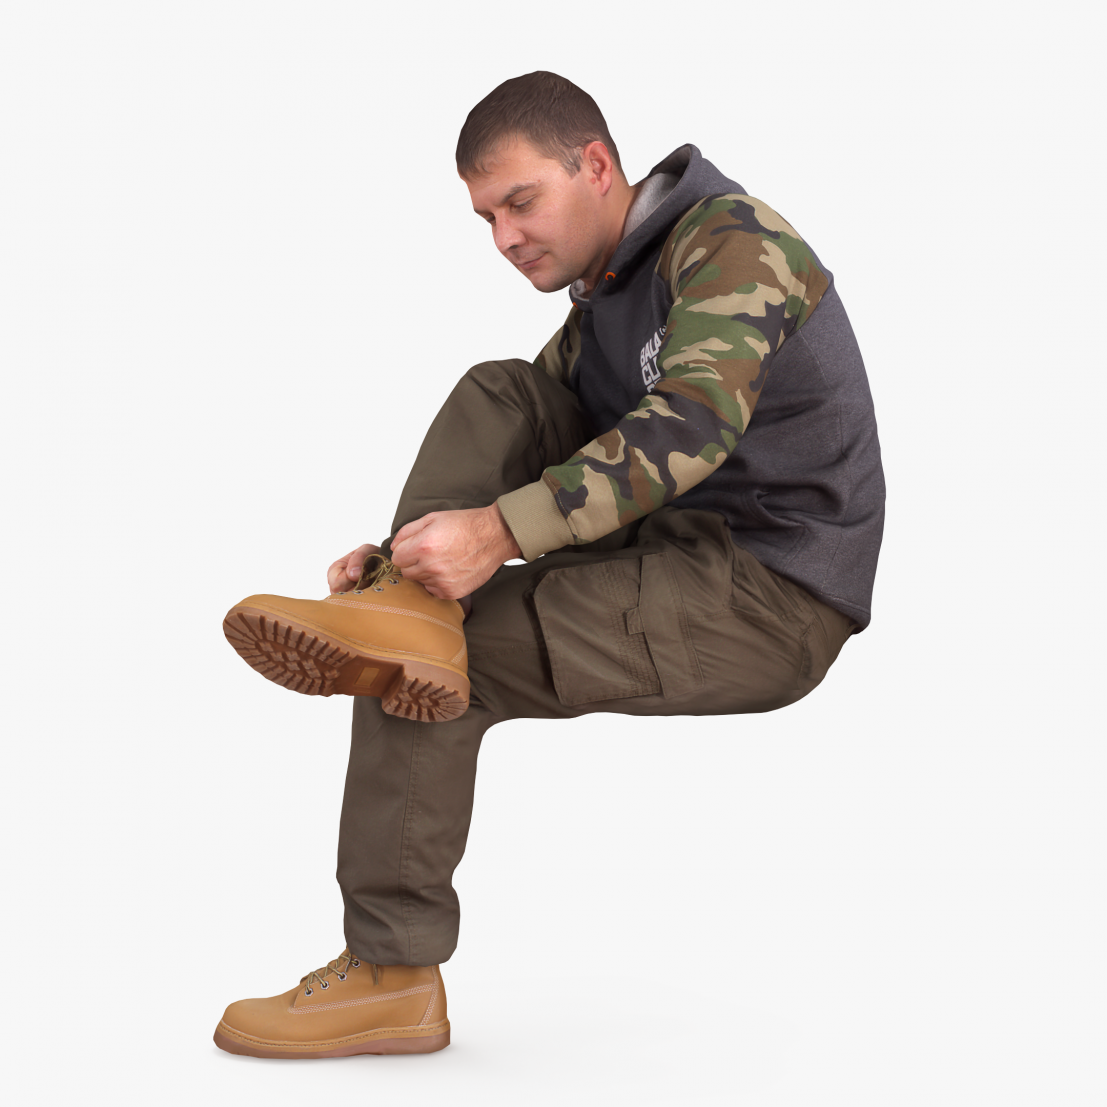 Urban Man Sitting 3D Model | 3DTree Scanning Studio